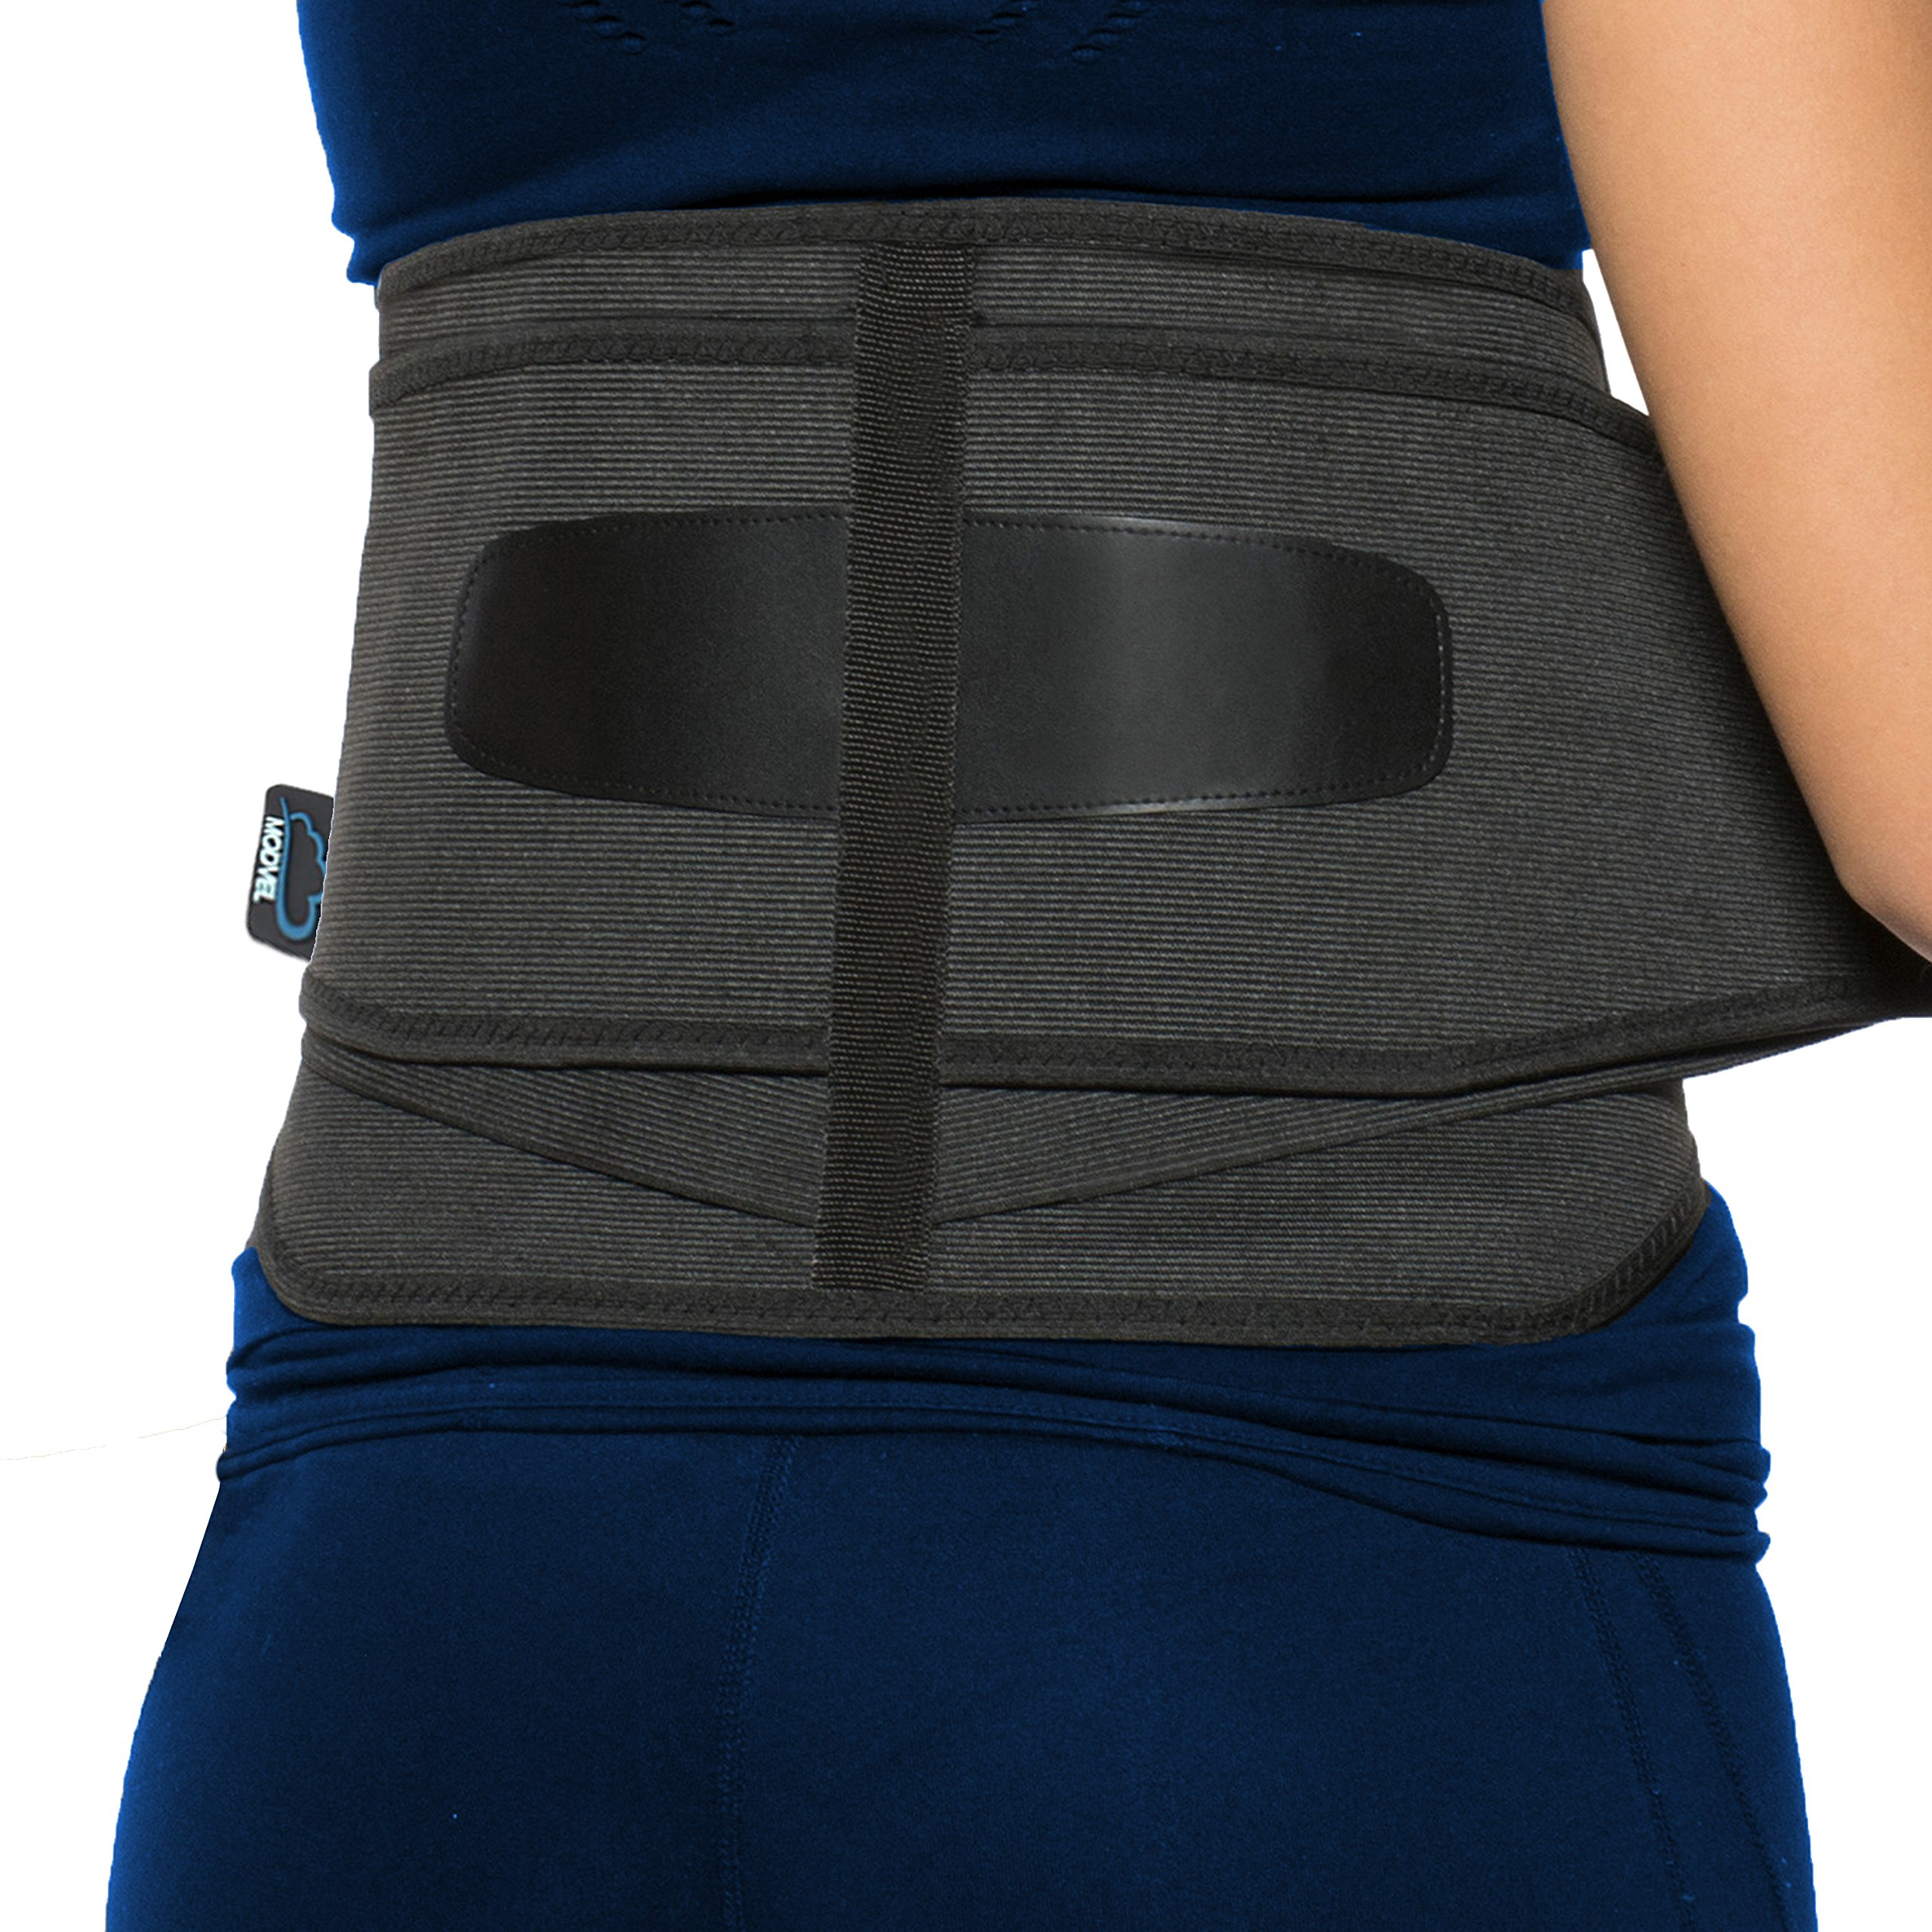 Modvel Lower Back Lumbar Support Brace for Men and Women - Orthopedic Posture Corrector Brace Belt Design - Relieving Back Pain - Great for Employees at Work, Desk Jobs, Standing Jobs. S/M/L (MV-119)